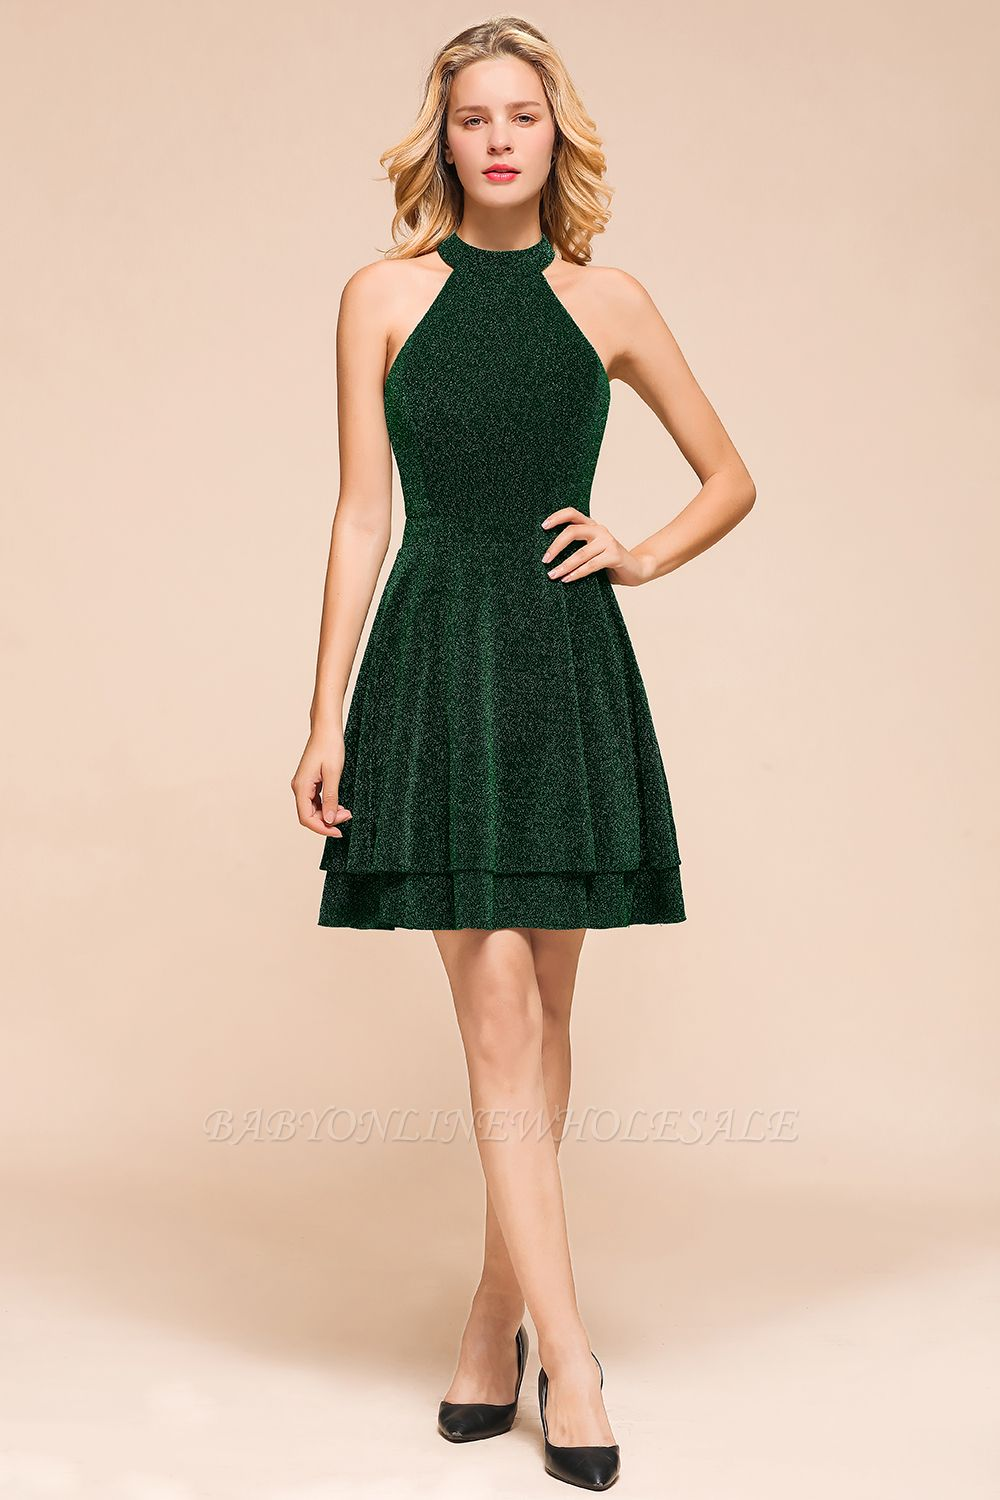 Arlene | Trendy Emerald Ruffles Open back Homecoming Dress